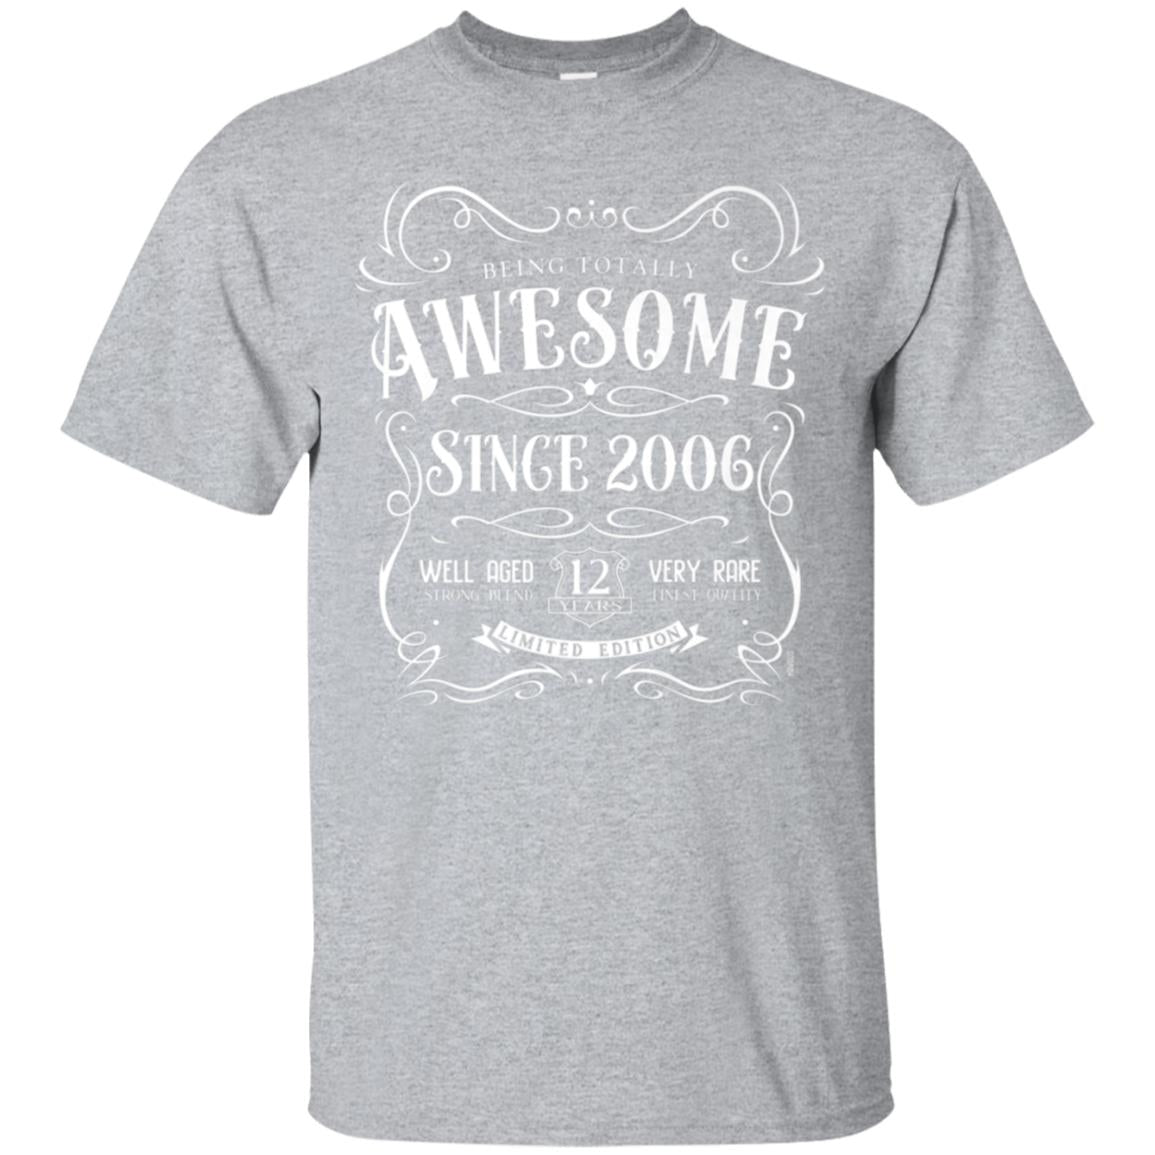 12th Birthday Gift T-Shirt Awesome Since 2006 99promocode